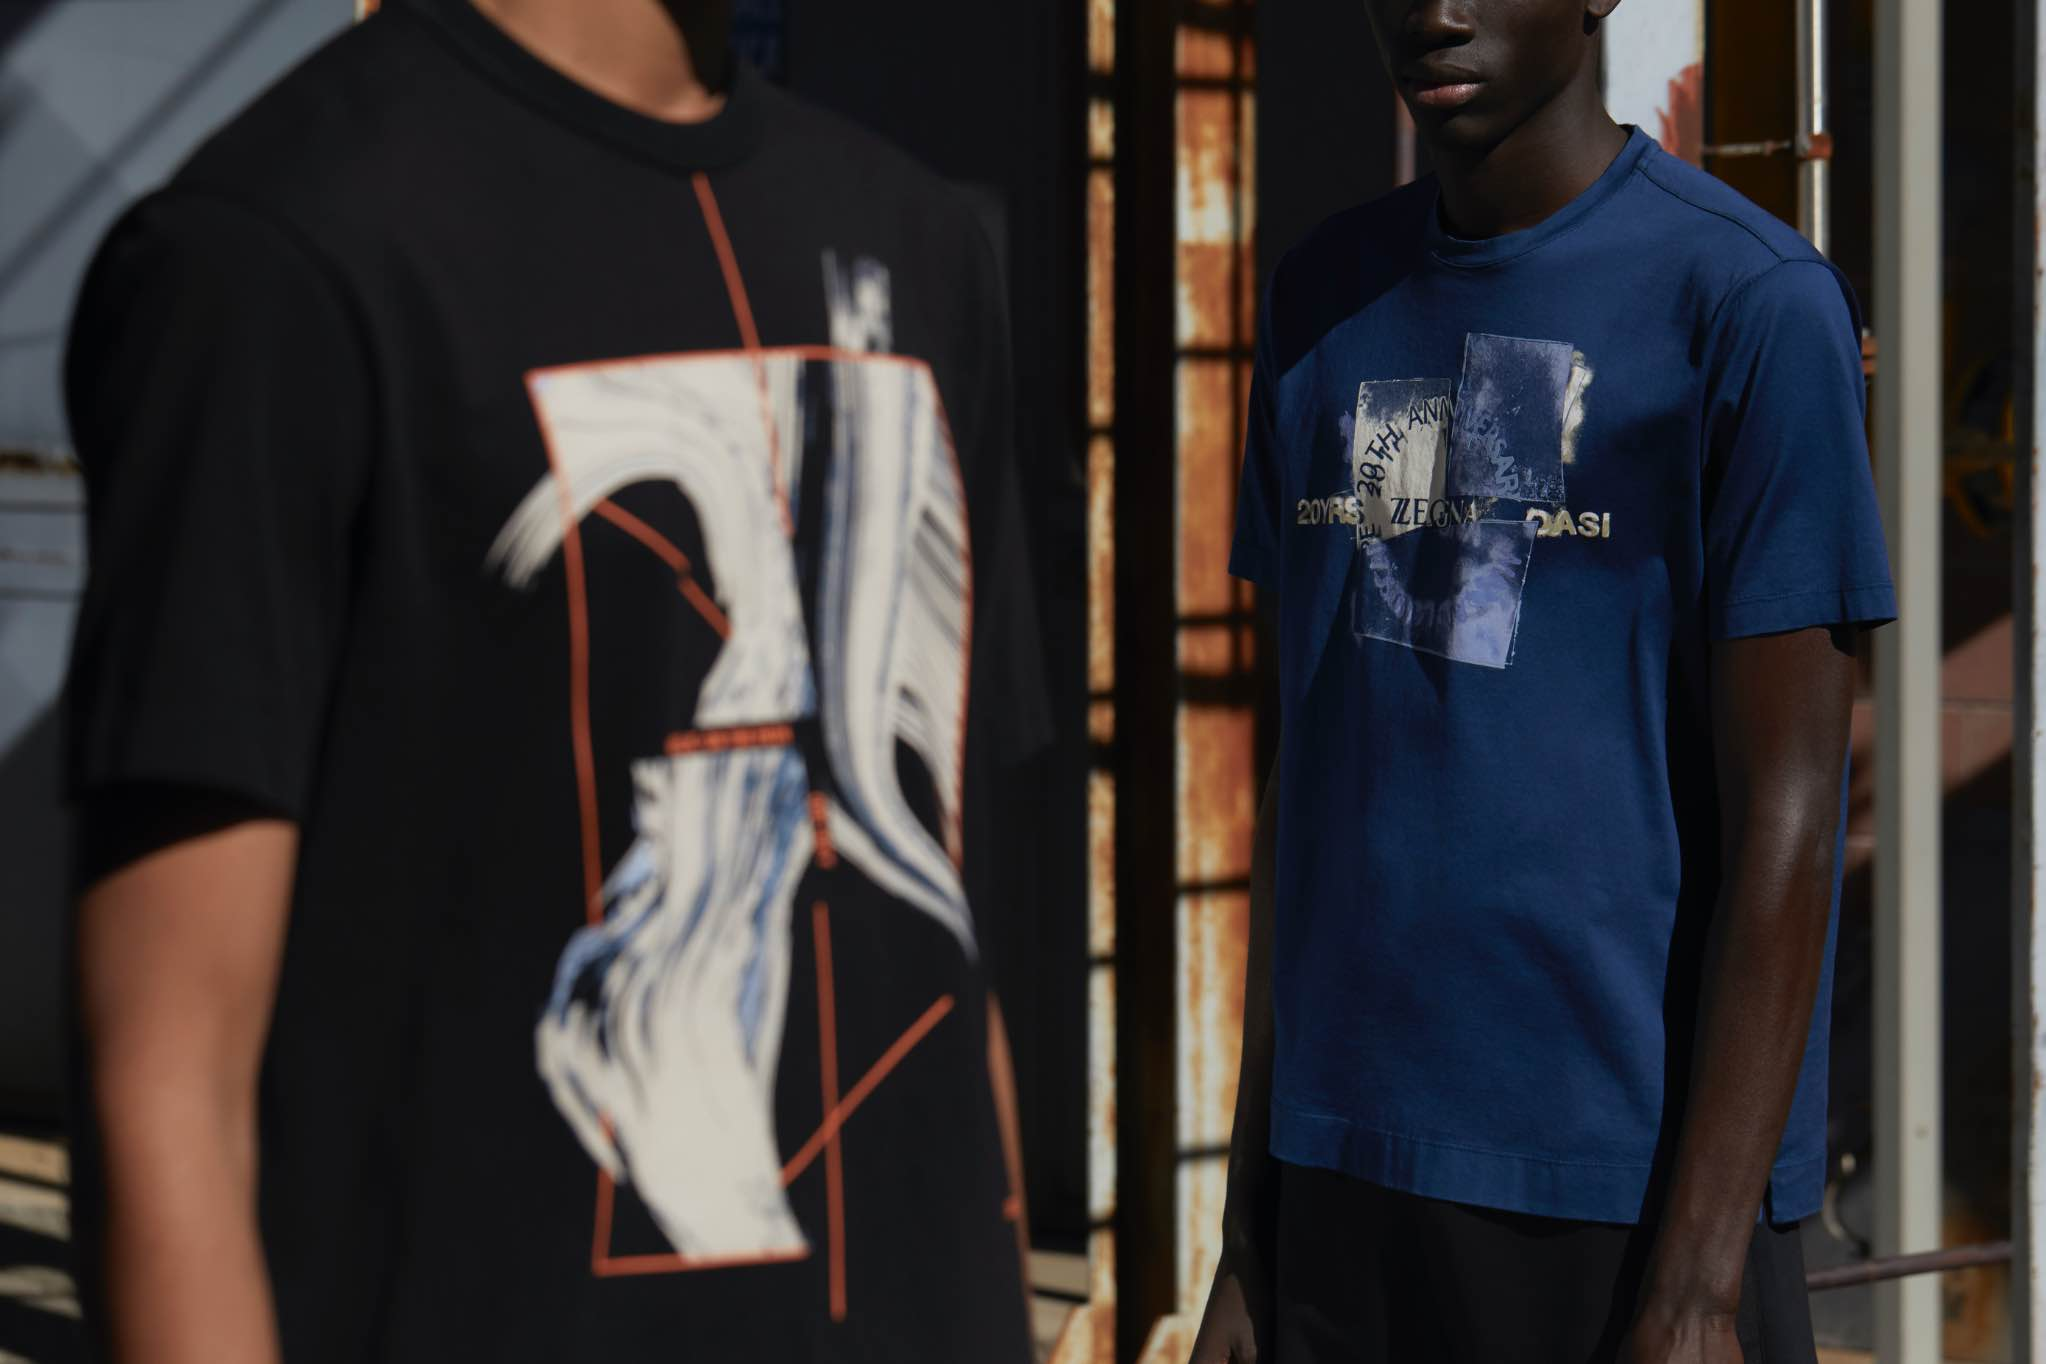 Designer t-shirts for men | Summer collection 2021 | Zegna